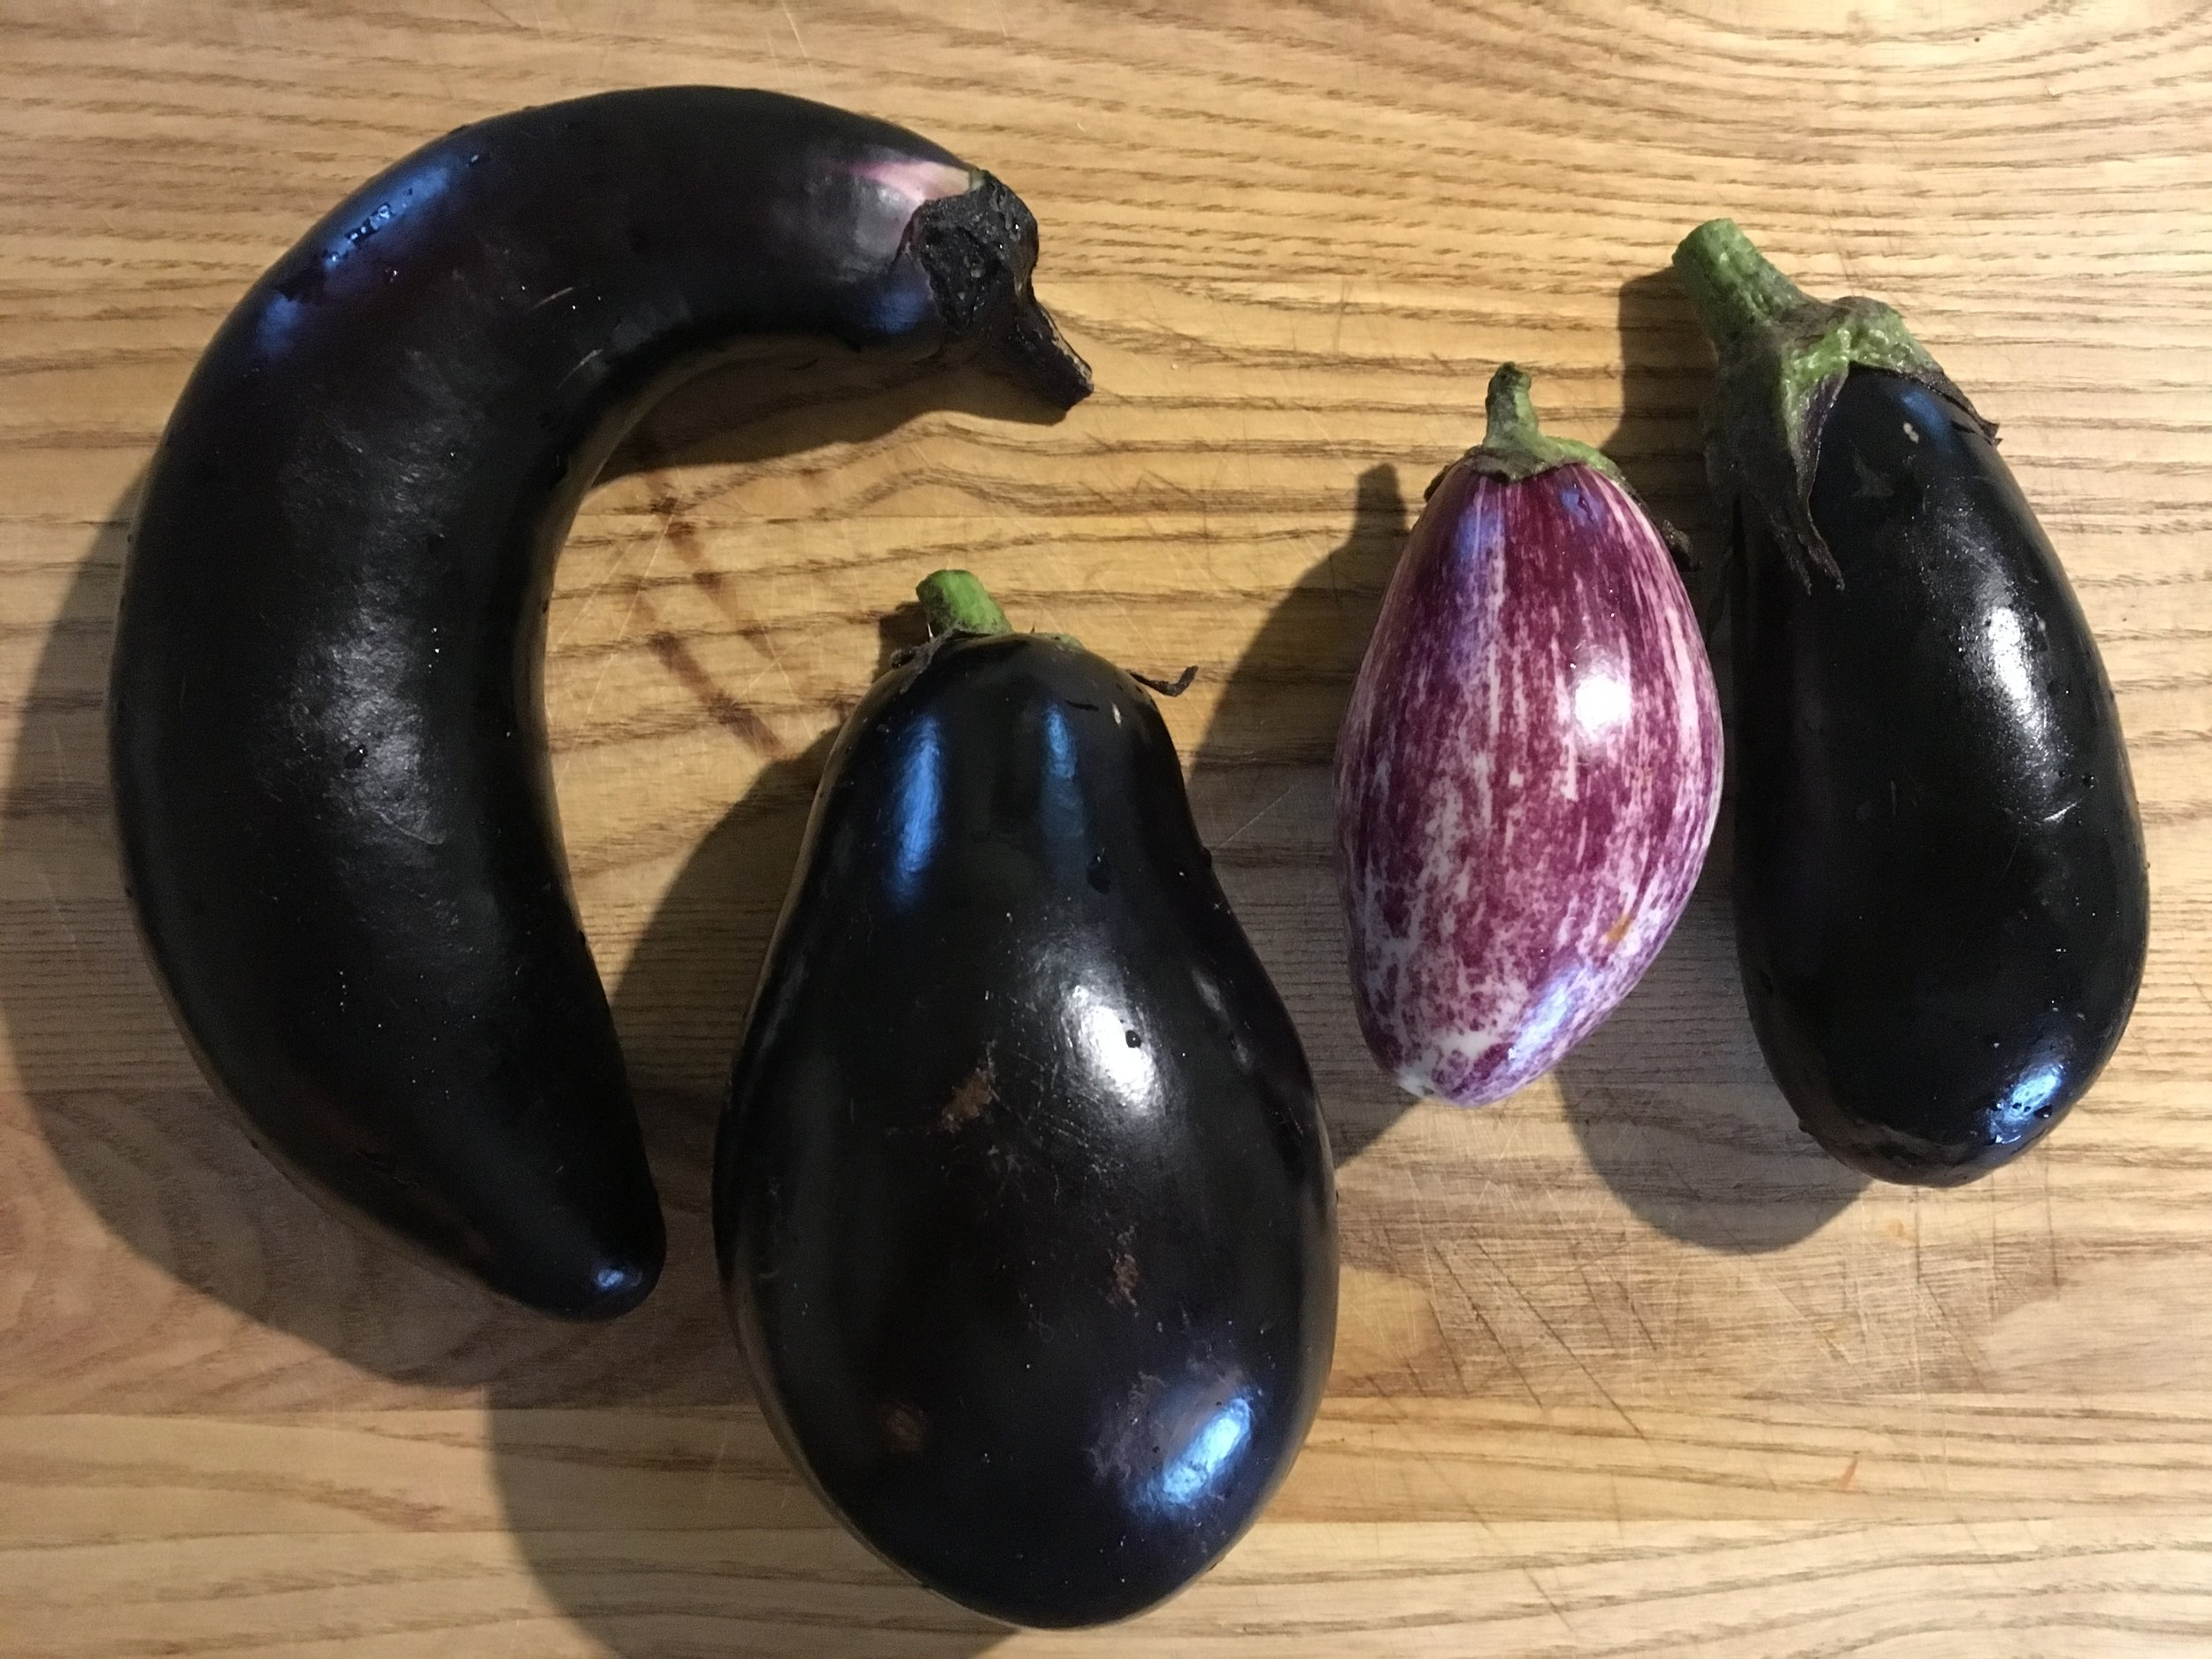 We grow several types of eggplant, and here are the ones I used (from left to right): galine, calliope, diamond (all Asian varieties) and a traditional bell  eggplant.